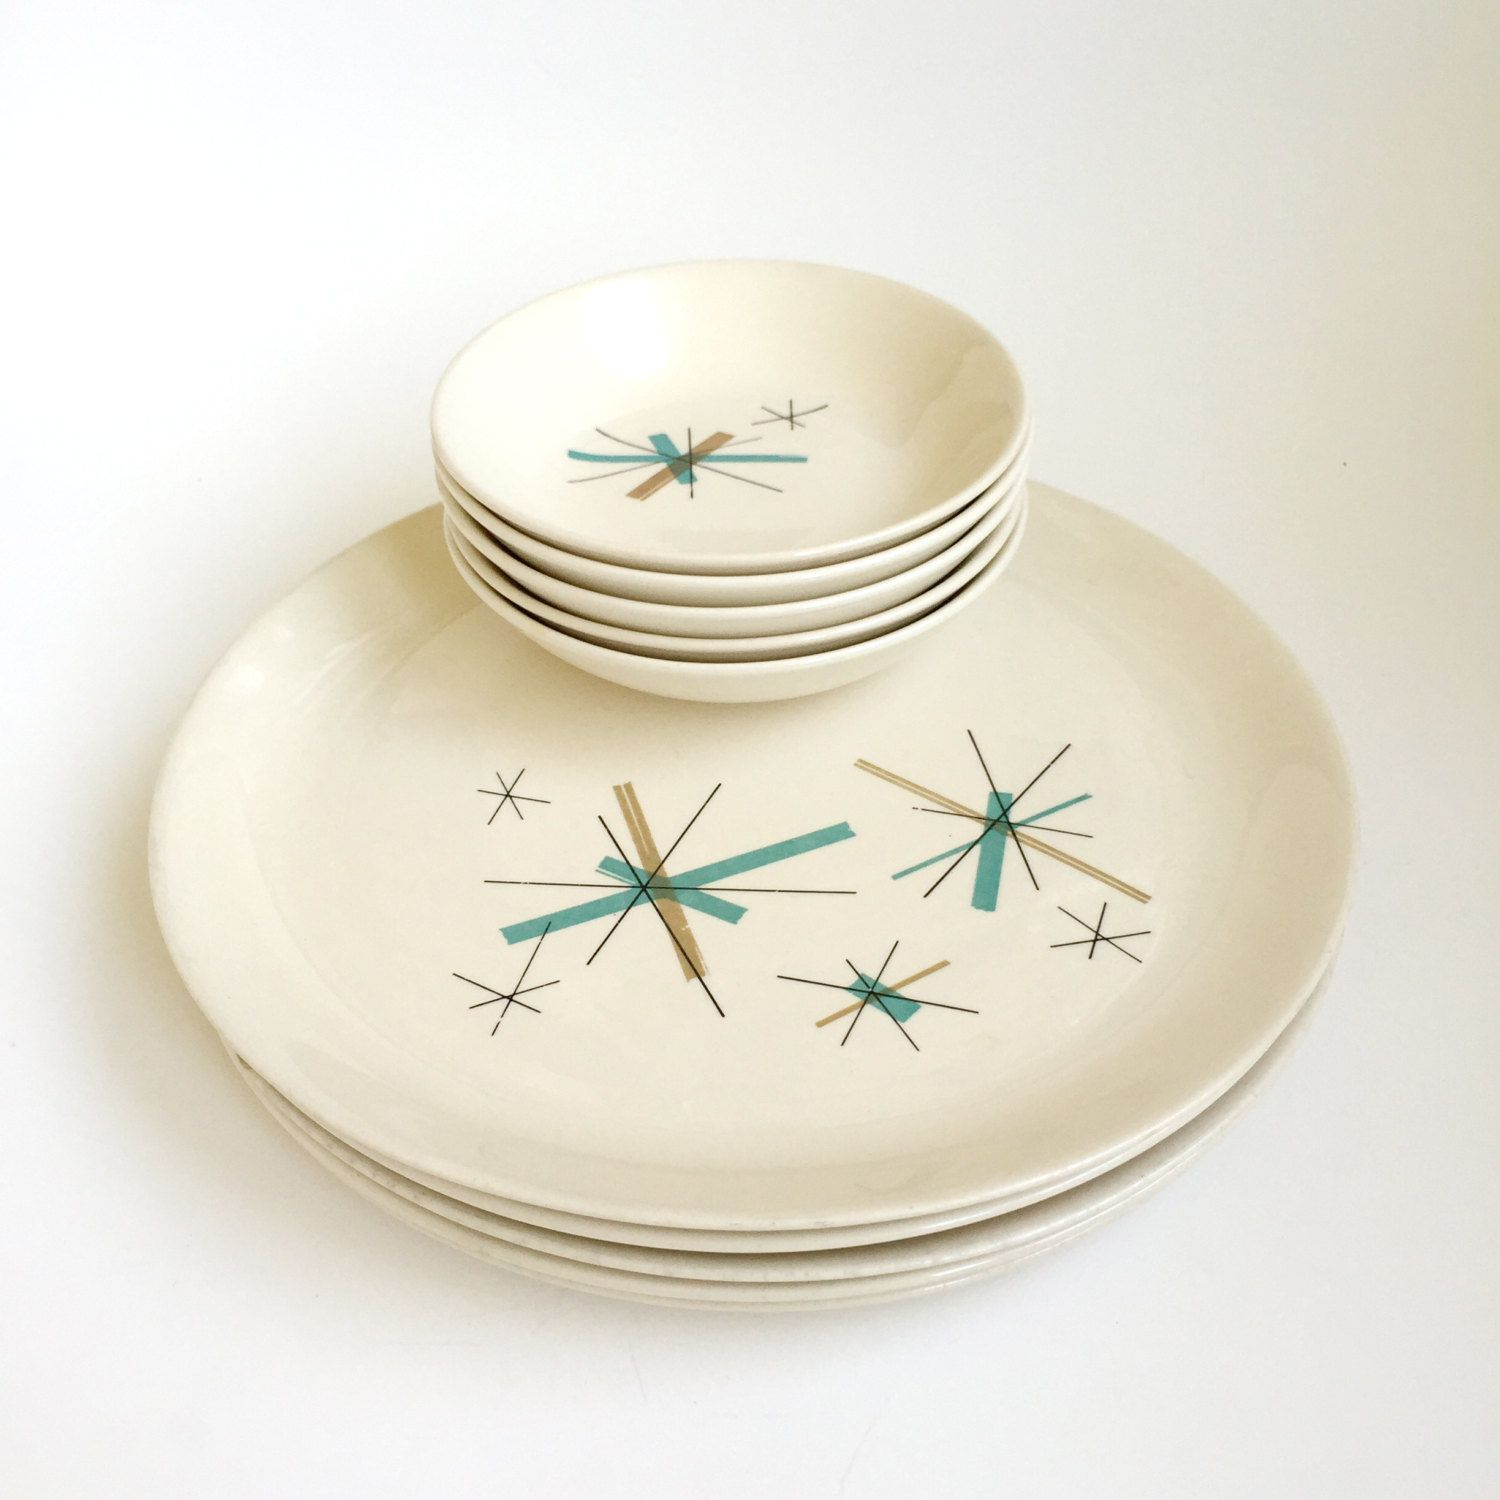 Salem Ovenproof North Star Dinner Plates and Dessert/Fruit Bowls by PowersMod on Etsy